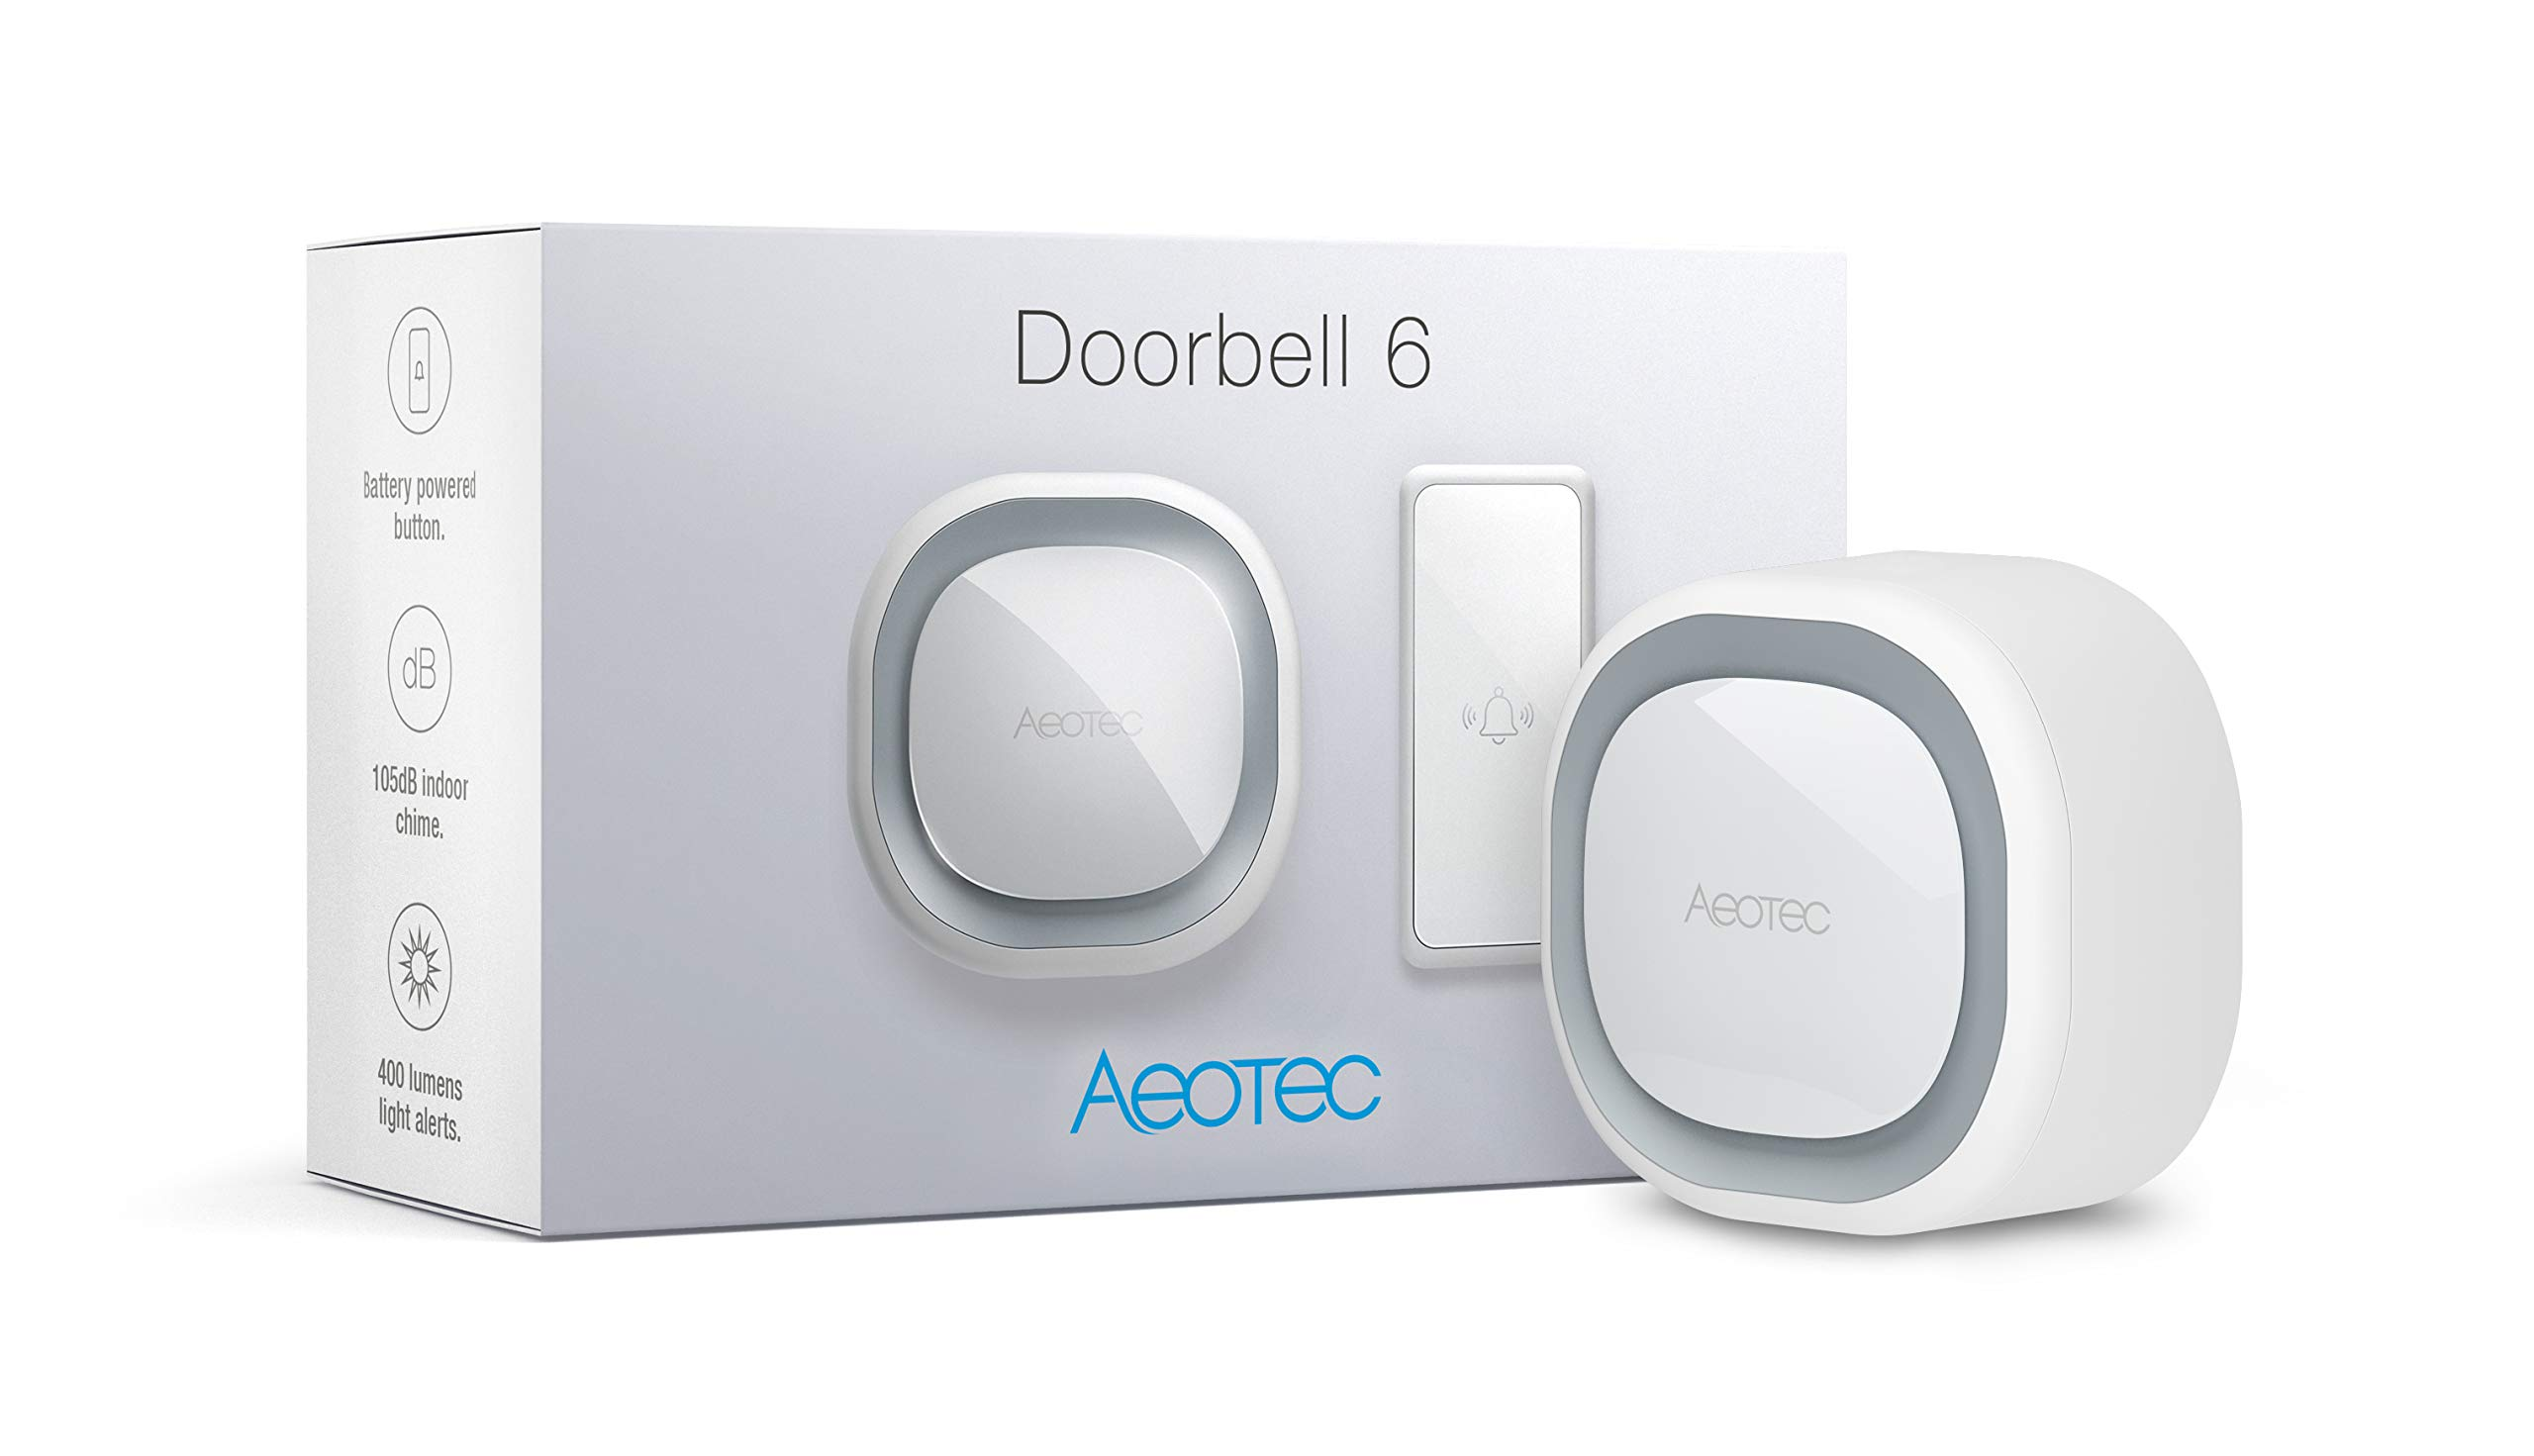 Aeotec Z-Wave Doorbell 6 with Outdoor Button, Z-Wave Plus, Wall-Mounted Sound & Light Ring, Smart Home Wireless Chime, 110 dB, Audio and Visual Alerts Screen reader support (Doorbell 6 with Button)